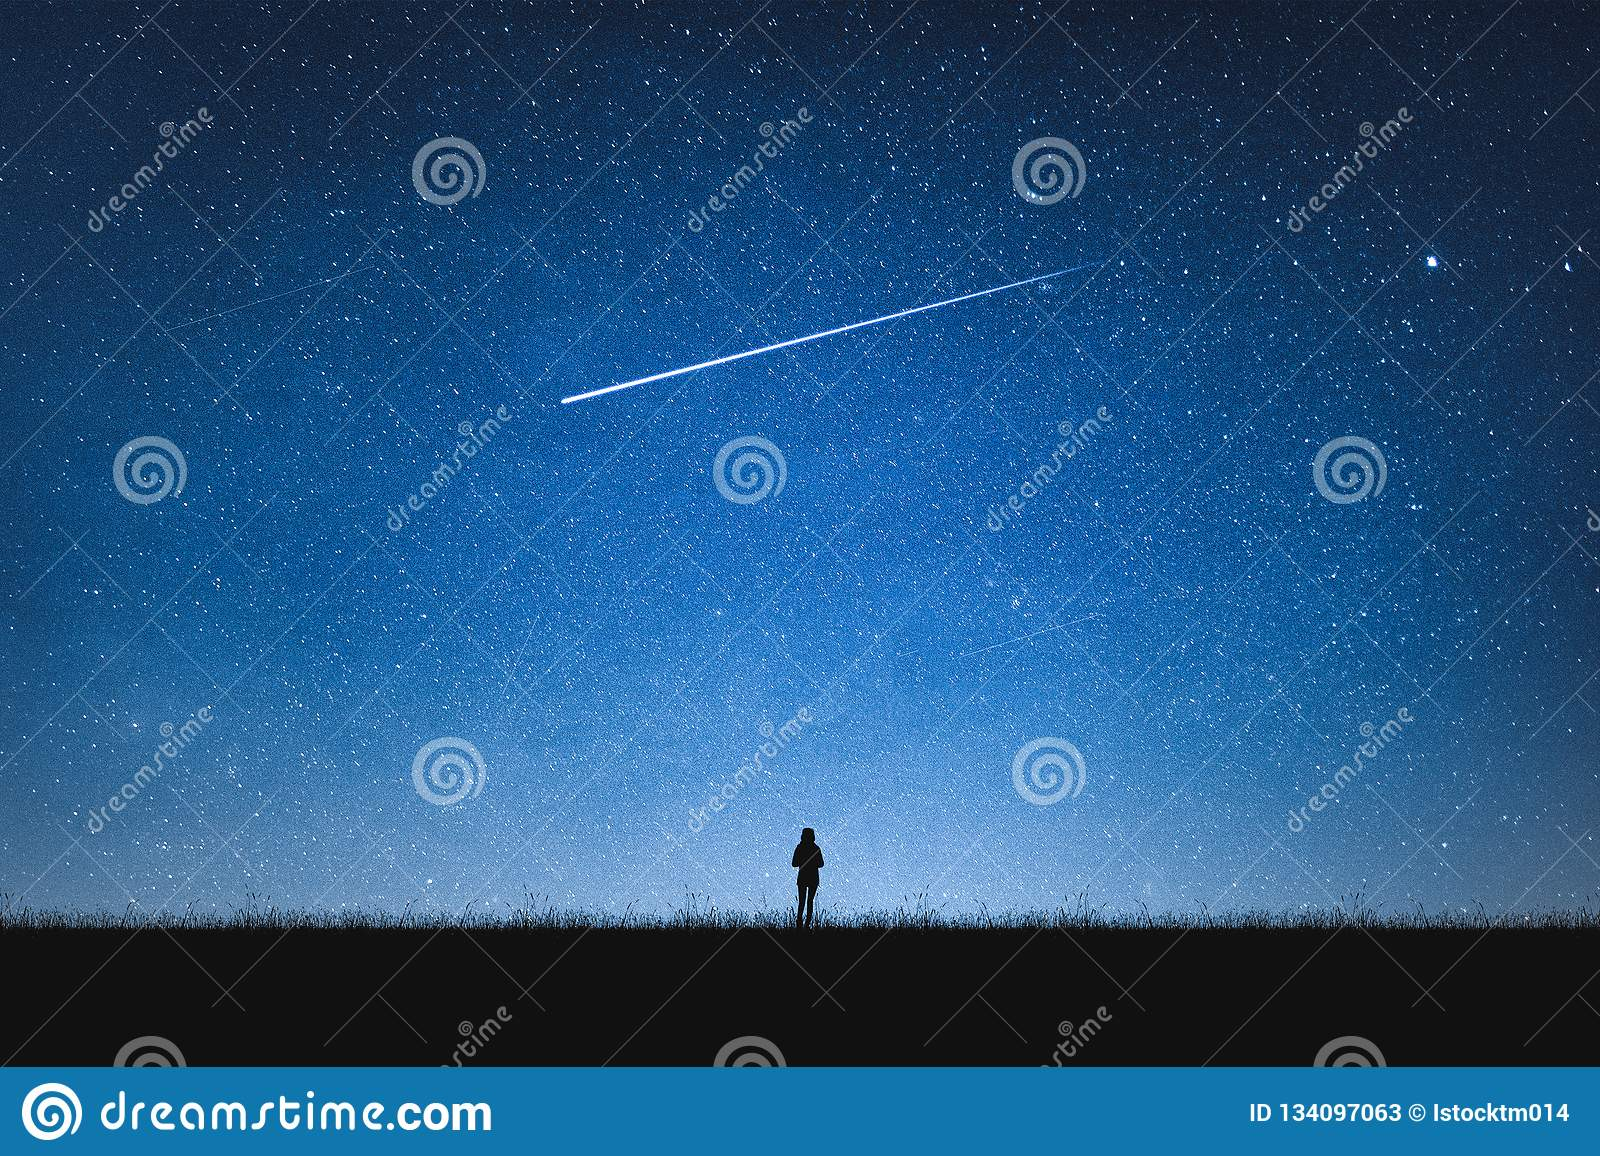 Silhouette of girl standing on mountain and night sky with shooting star. Alone concept